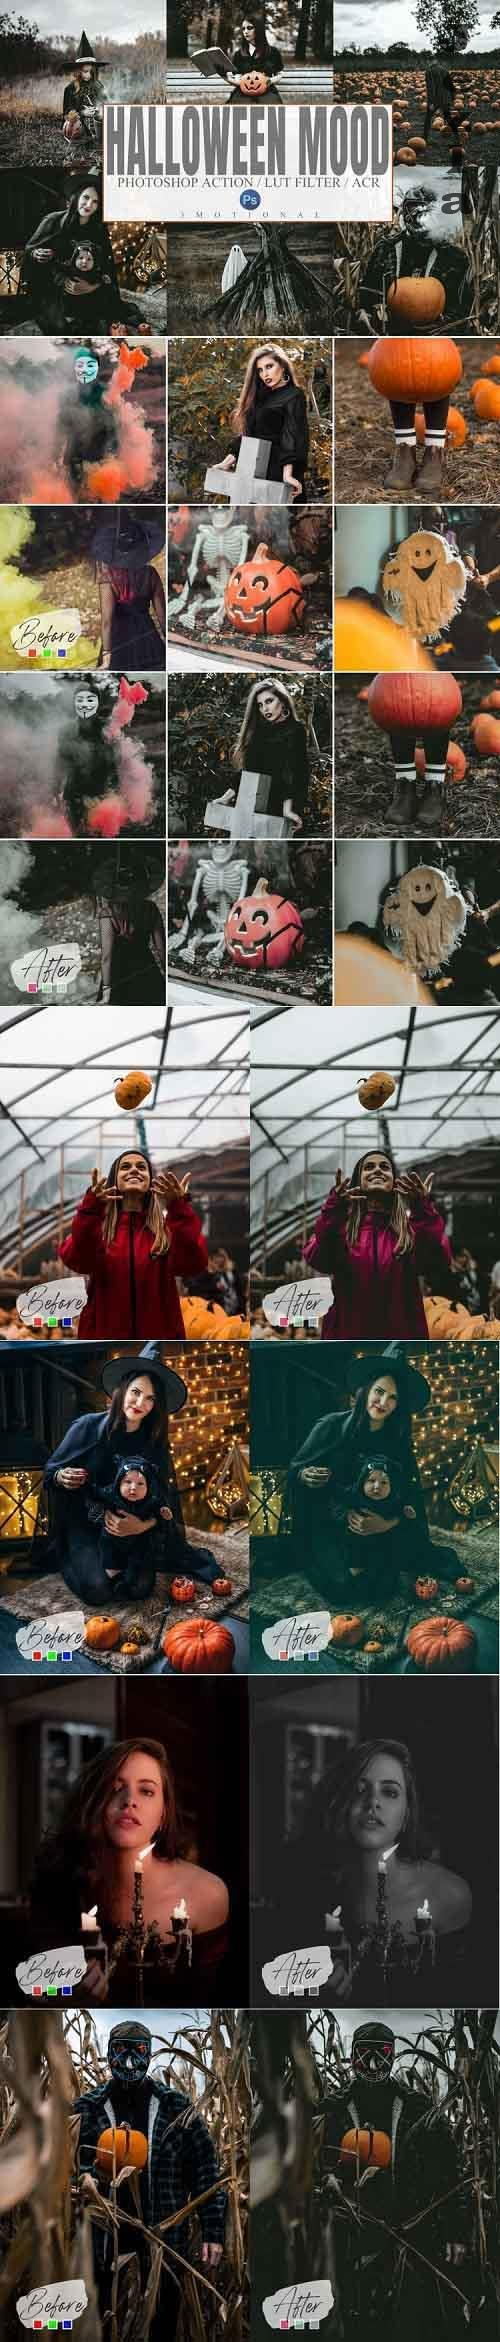 6 Halloween Mood Photoshop Actions, ACR, LUT Presets - 918976